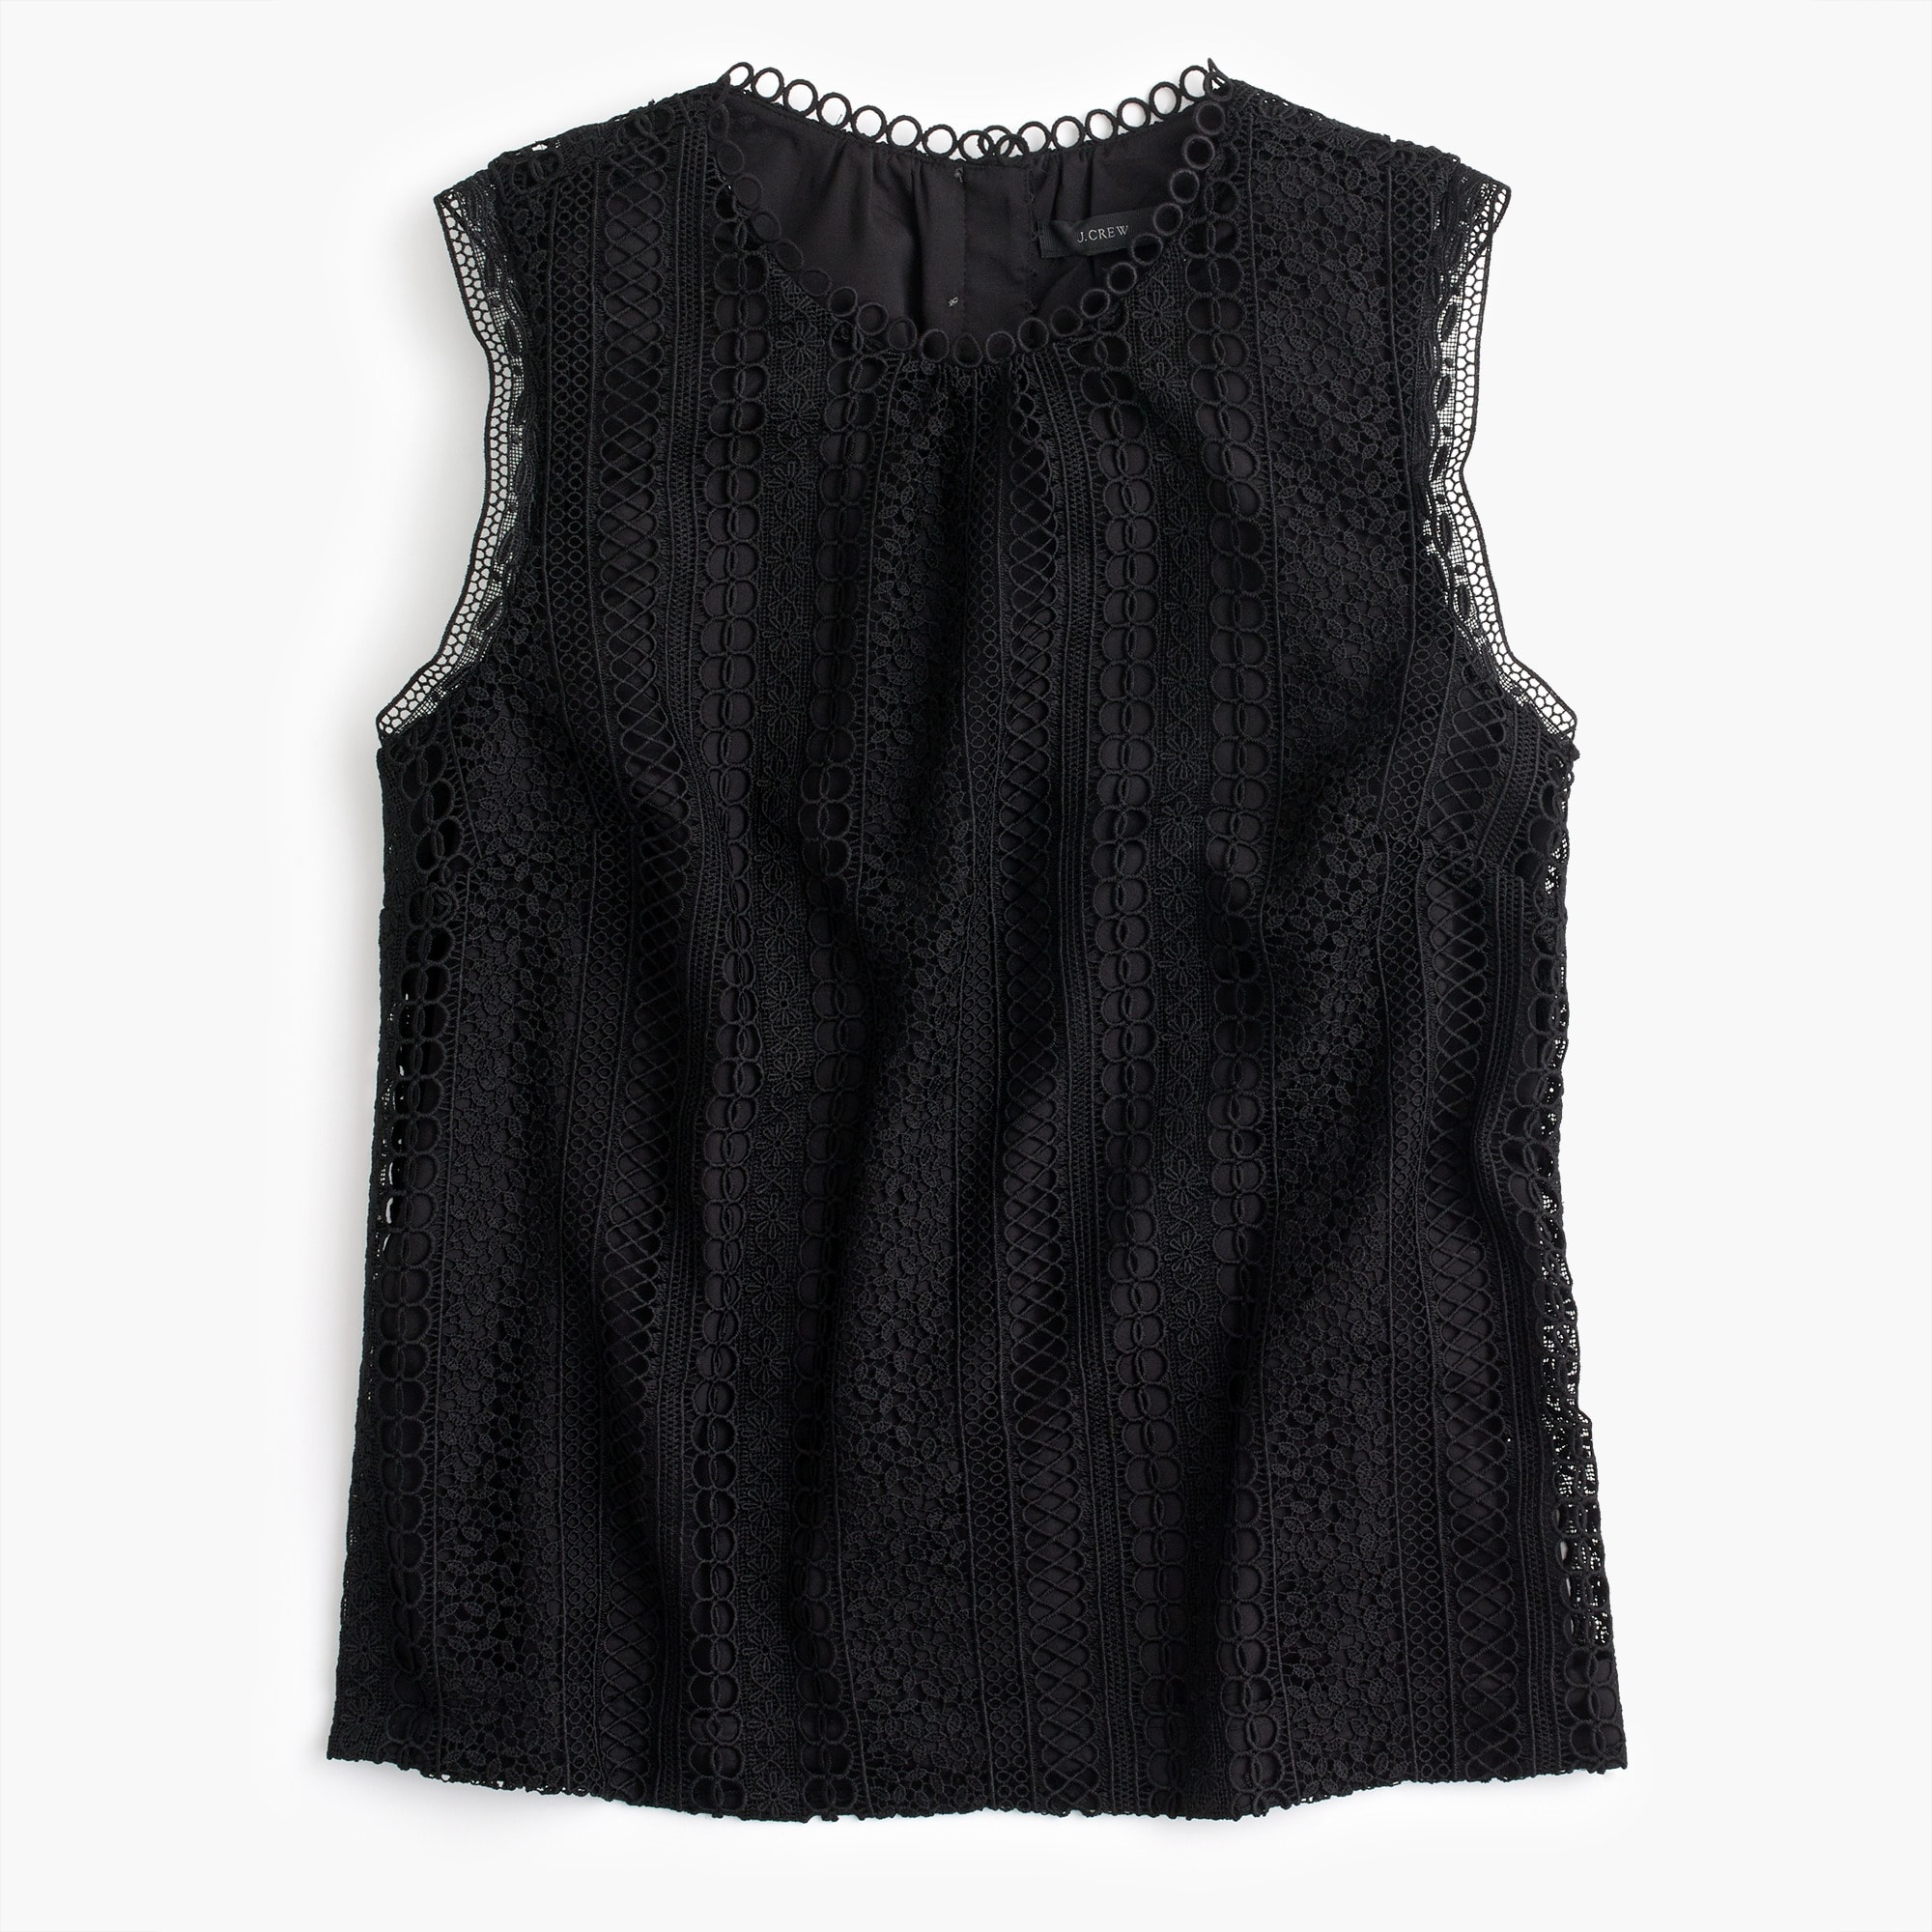 women's petite mixed lace top - women's shirts